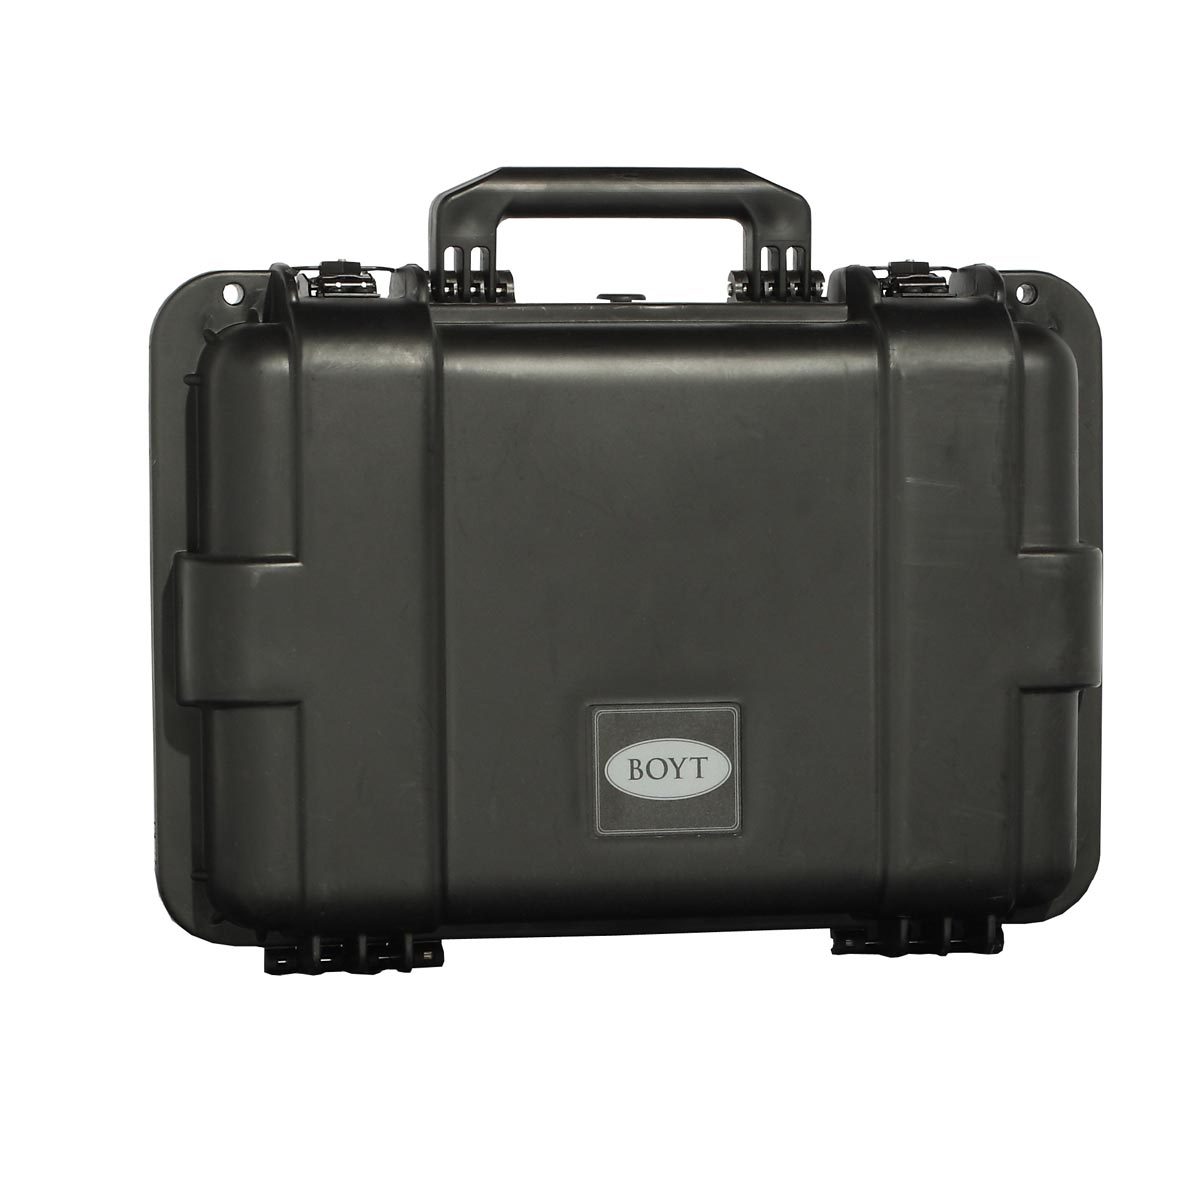 Boyt H-Series H16 Double Handgun/Accessory Case